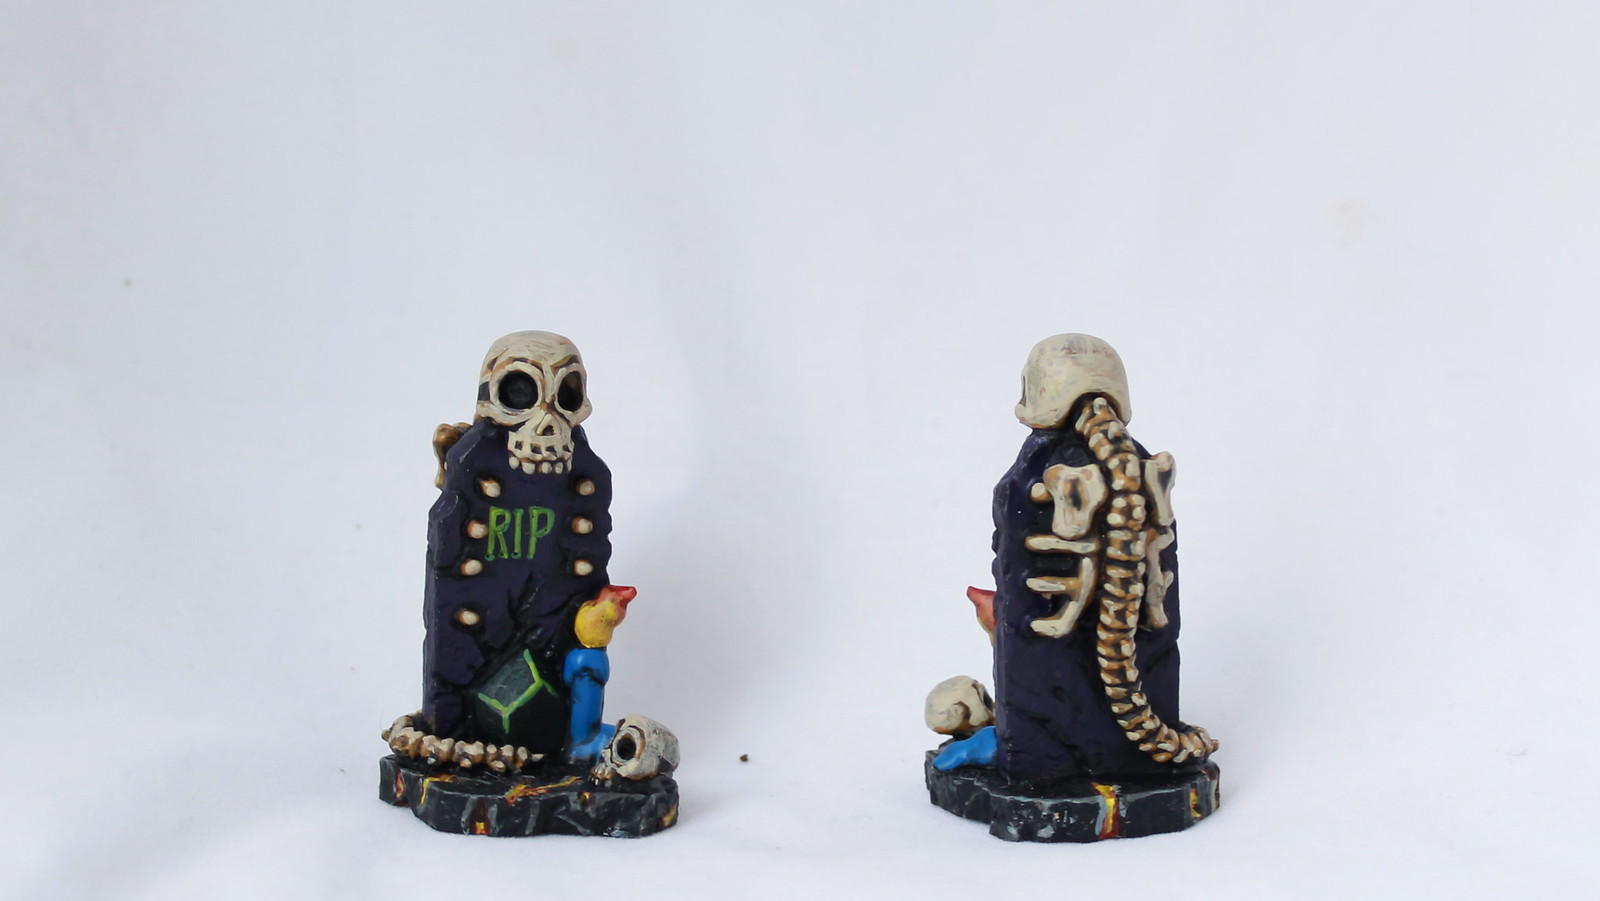 Super Dungeon Explore Shallow Grave Undead Skeletons Spawning Point Painted Chibi